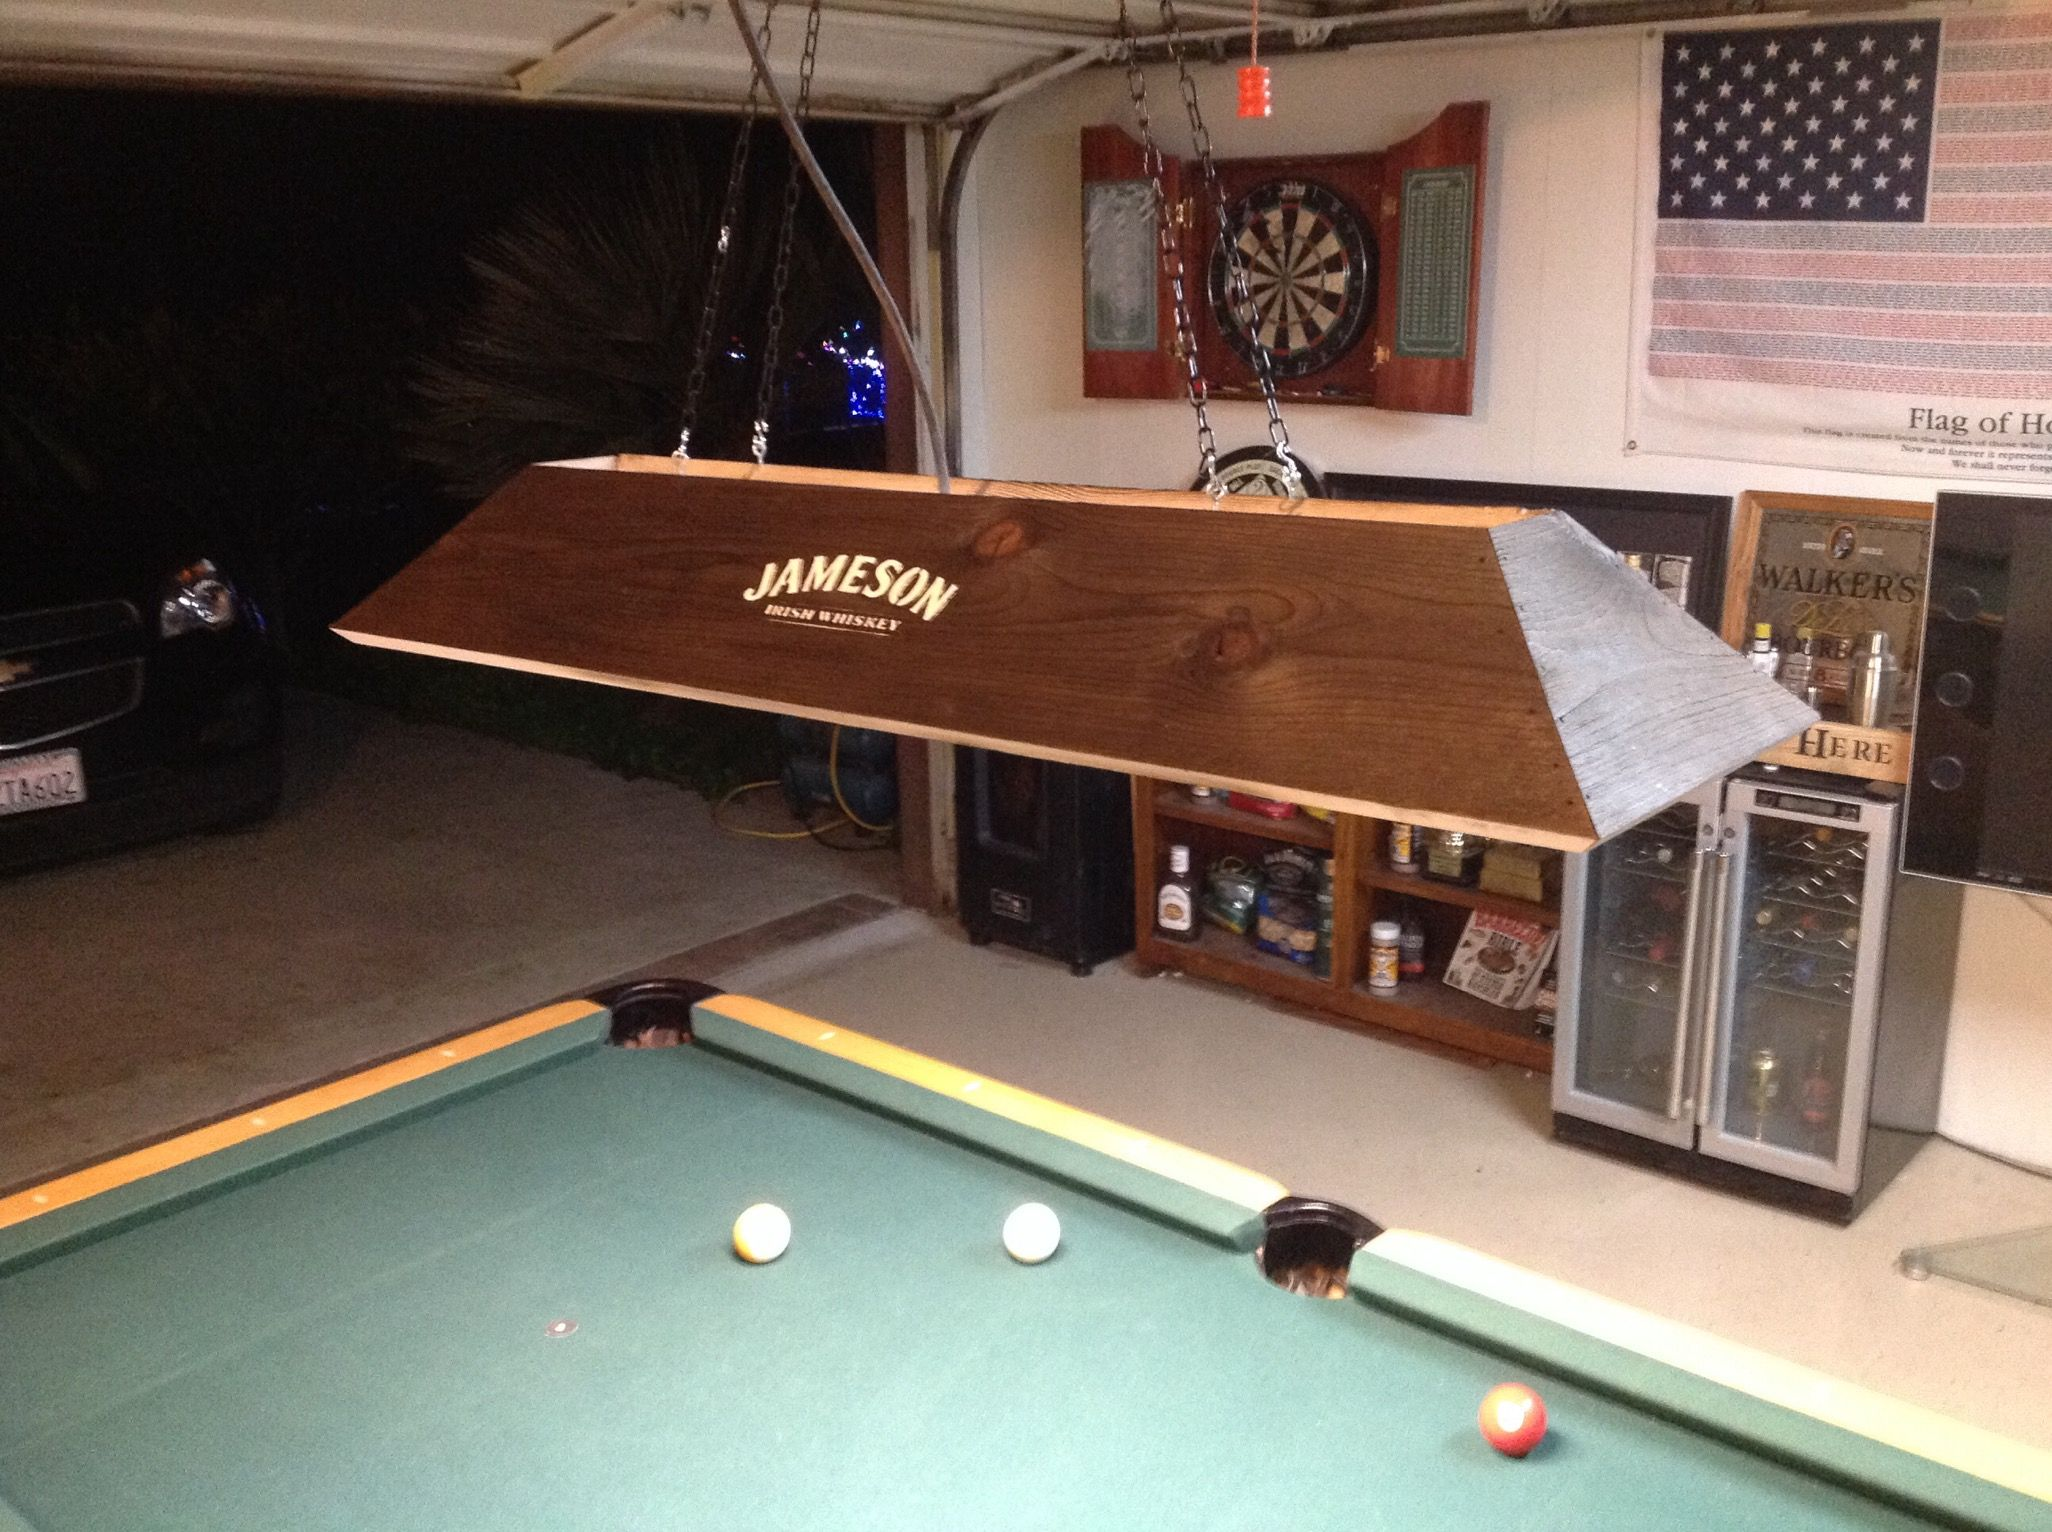 Pool Table Light Ideas man cave lights for above a pool table easy to do three whiskey bottles Jameson Irish Whiskey Pool Table Light